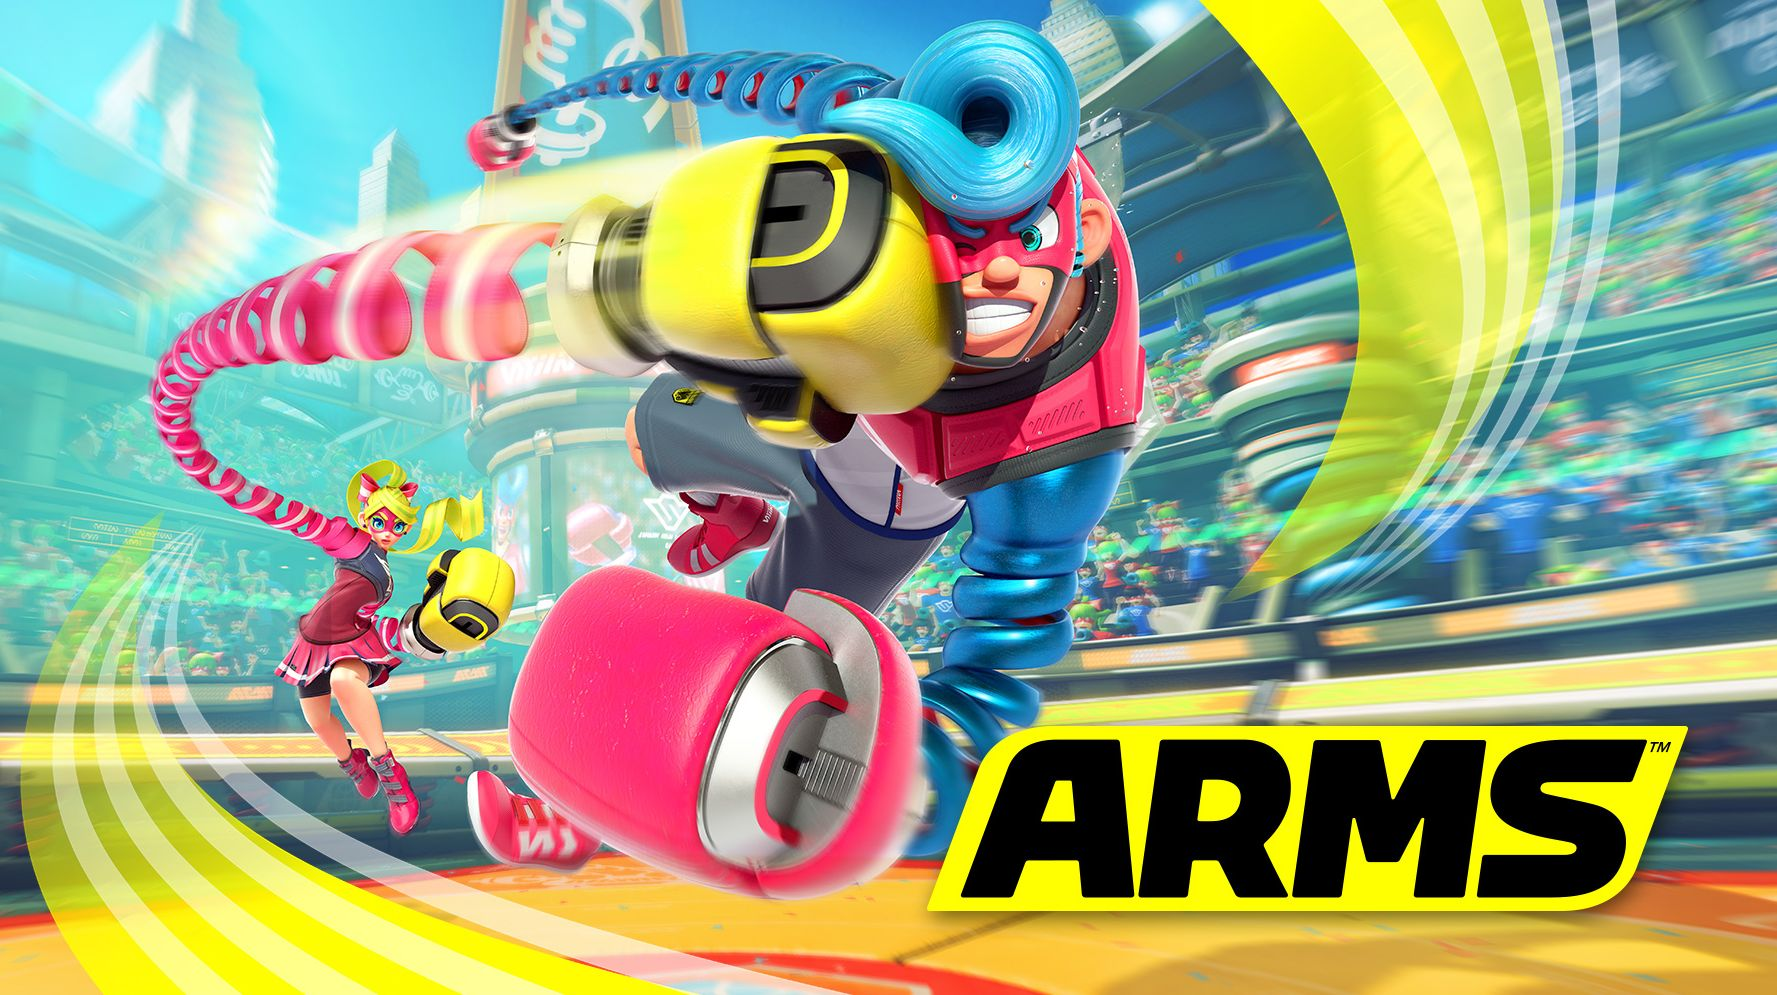 Review game ARMS: the most unusual fighting game of recent years